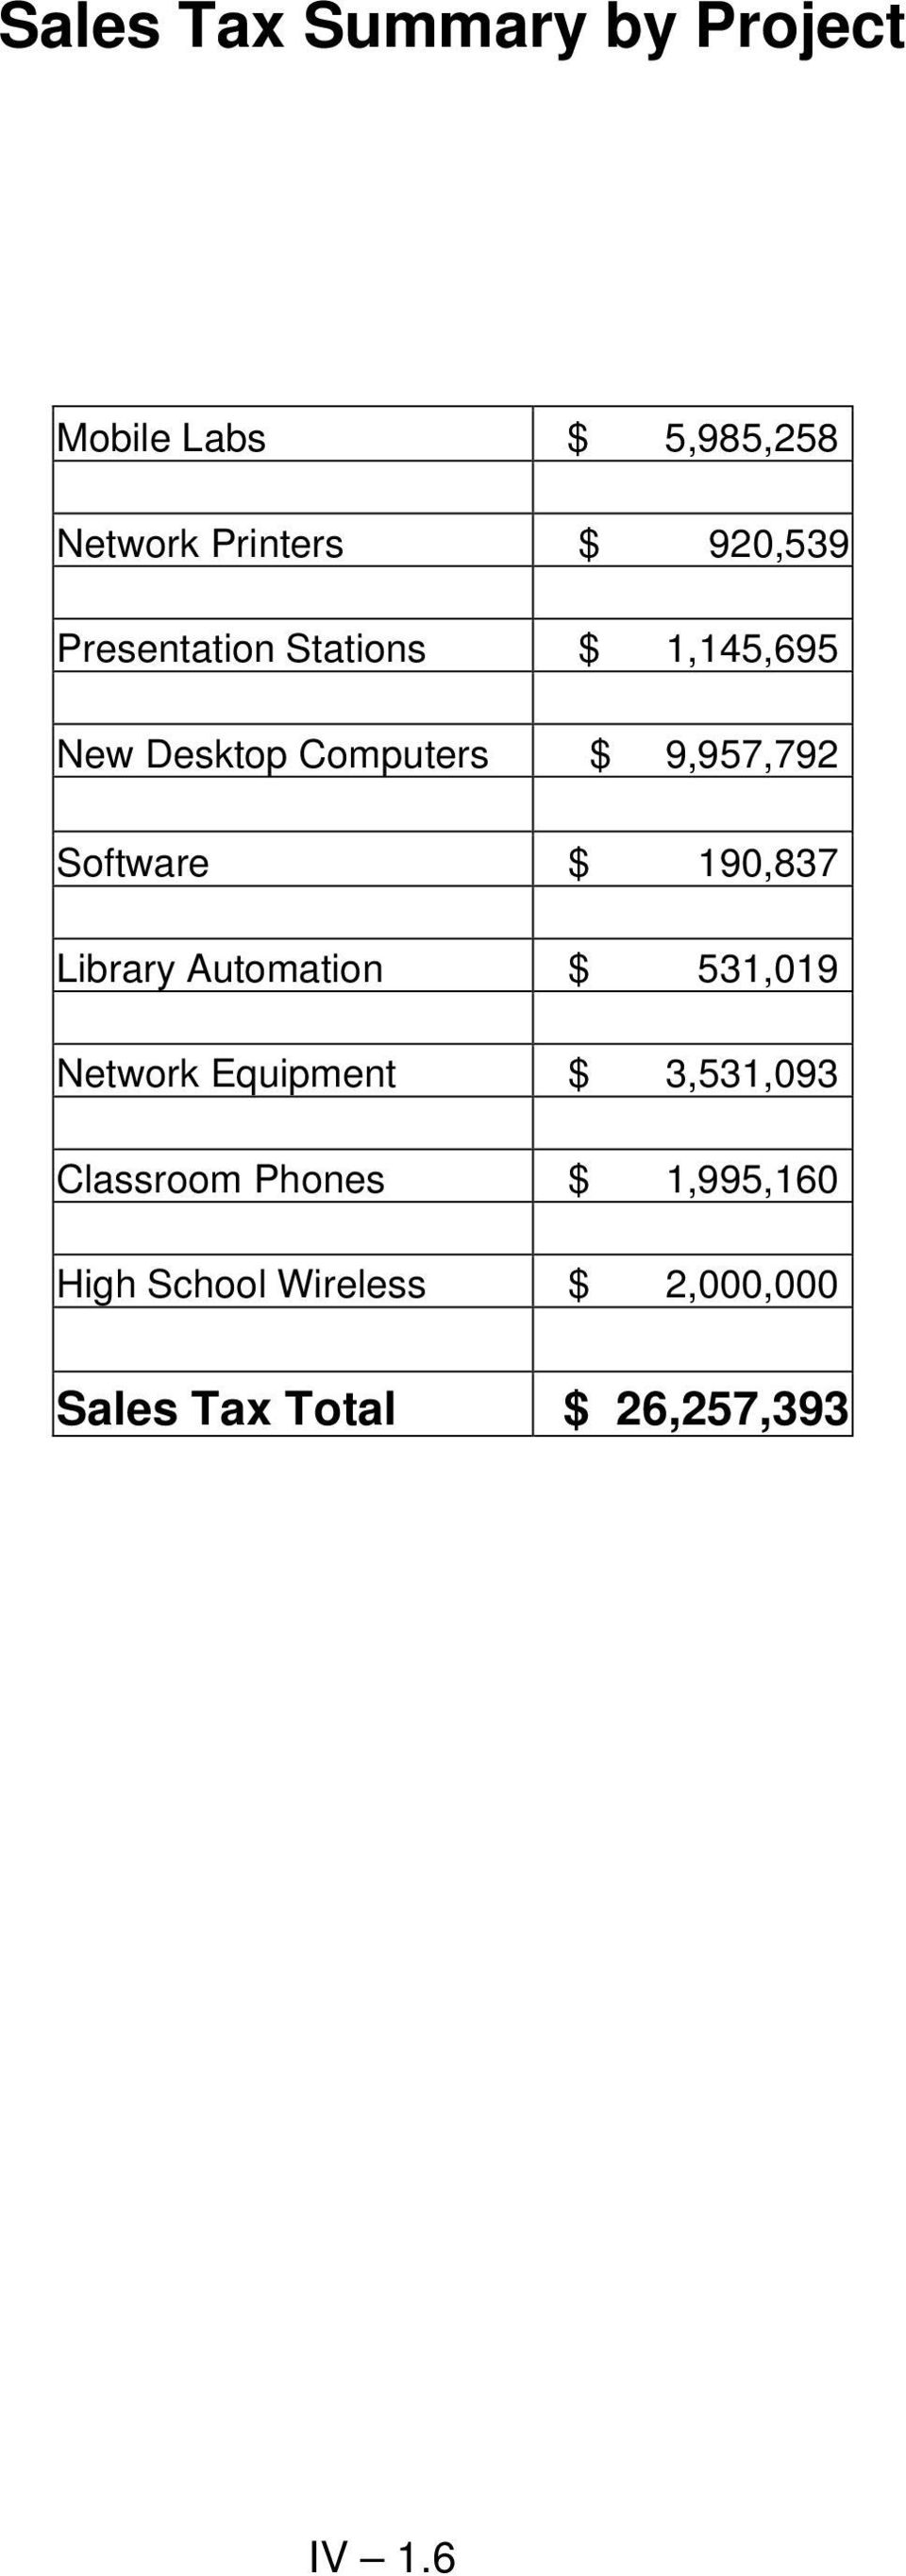 190,837 Library Automation $ 531,019 Network Equipment $ 3,531,093 Classroom